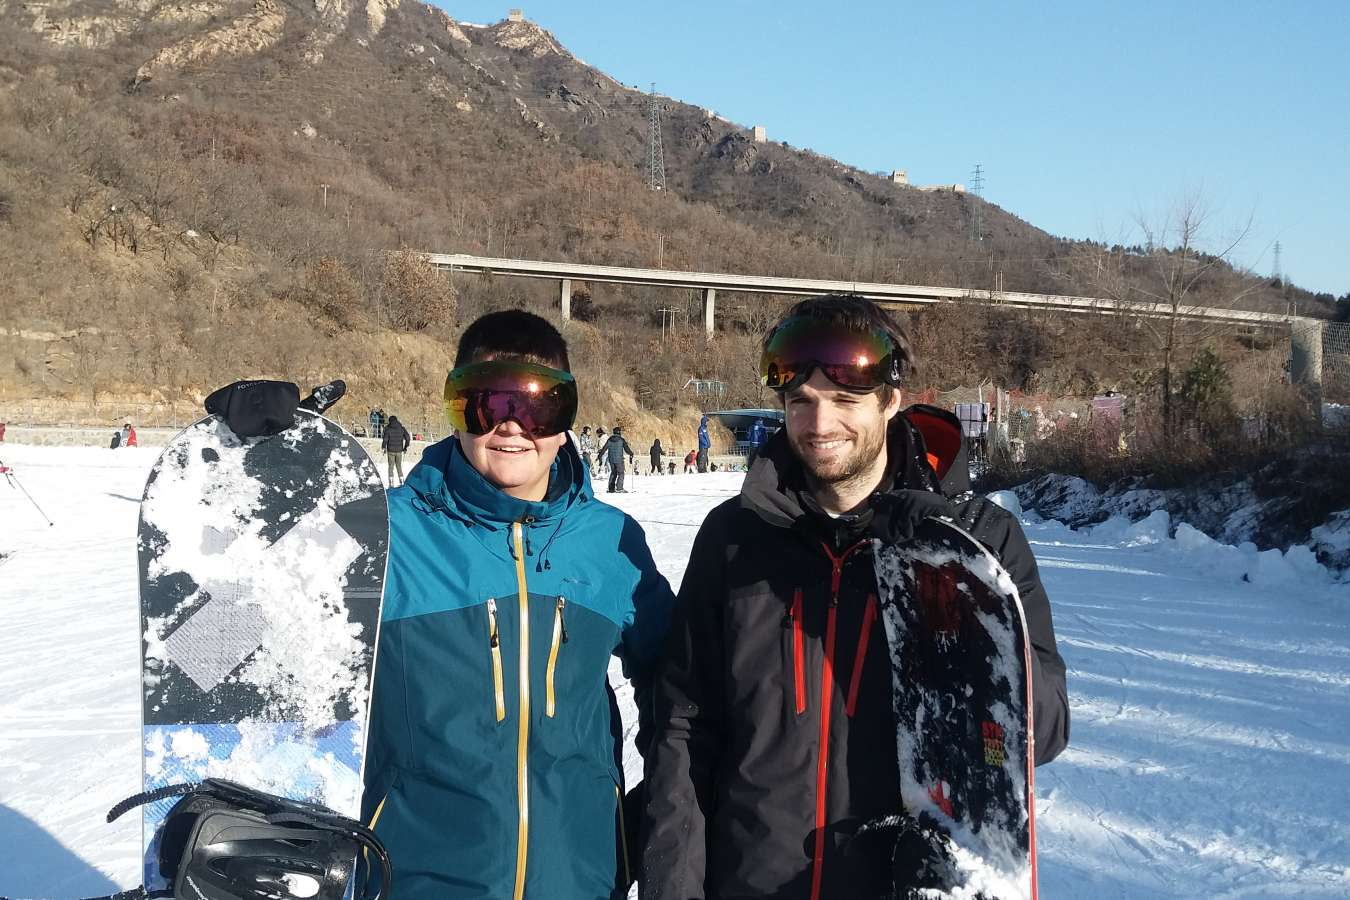 Skiing in China at the Huaibei International Ski Resort